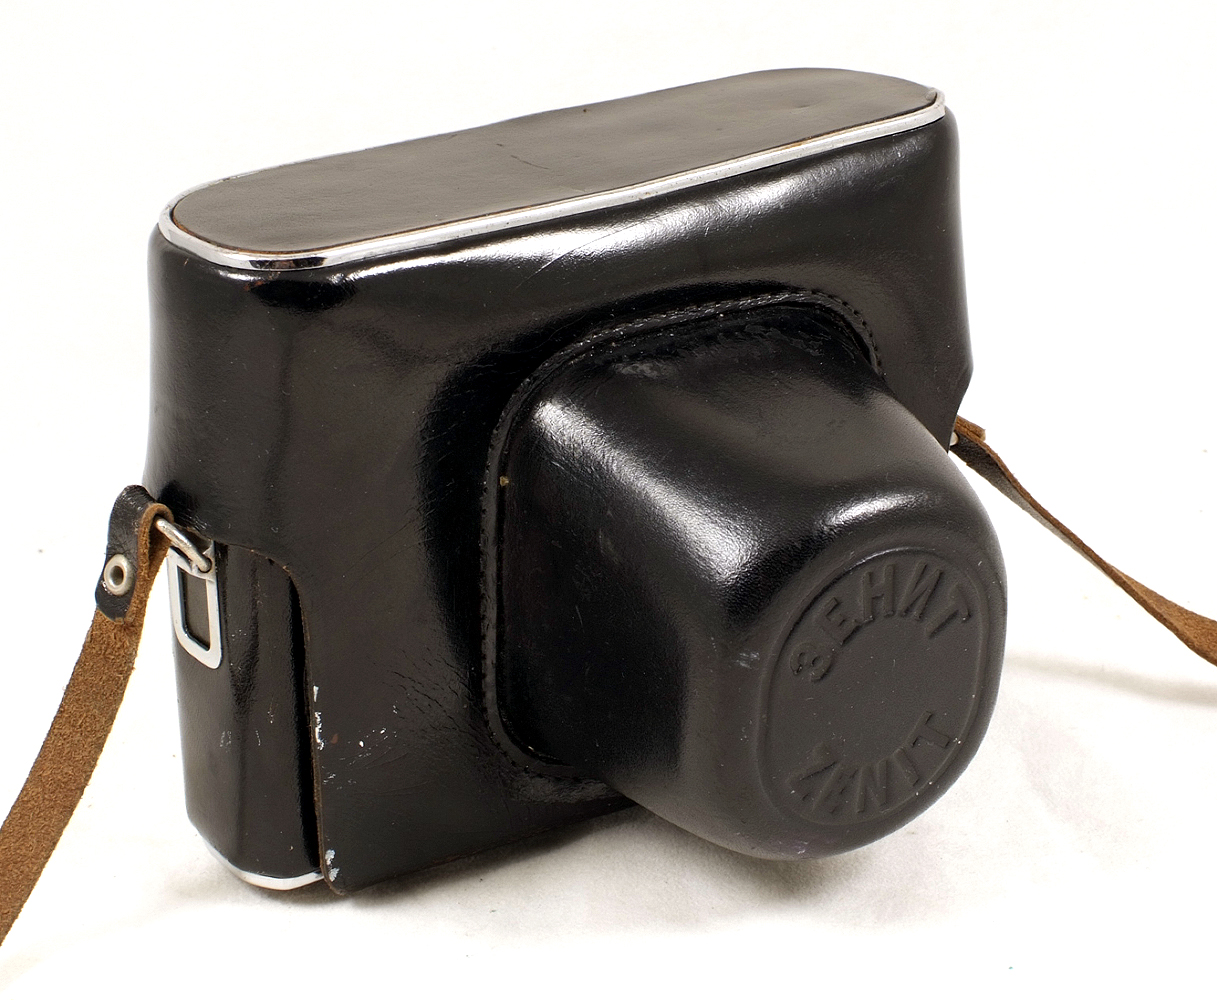 Zenit-E case camera (Pic: Aston's Auctioneers)